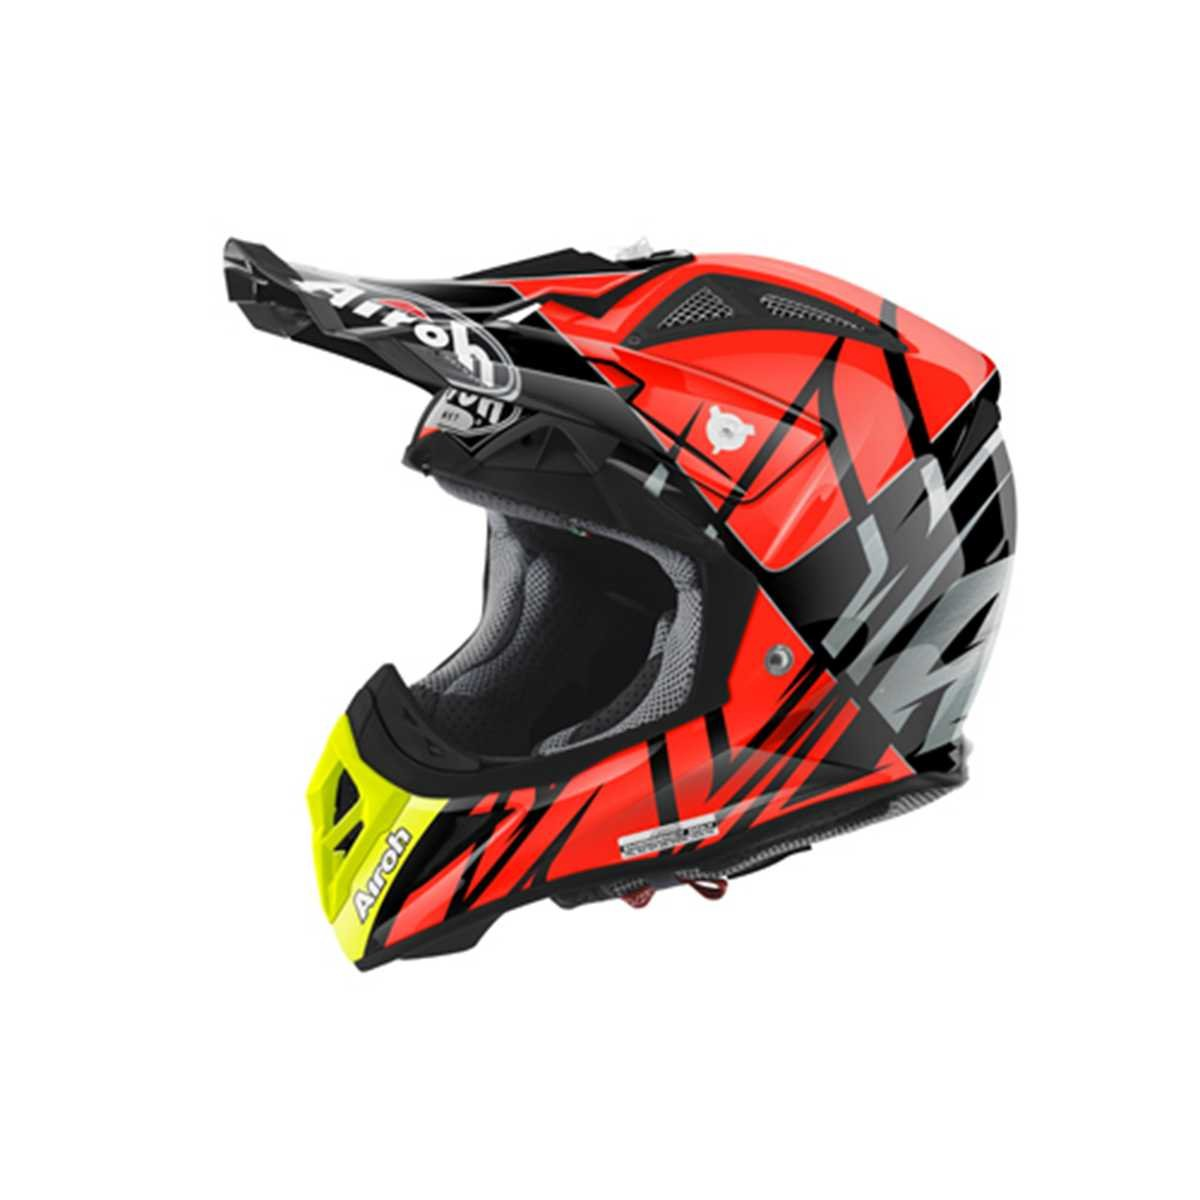 Airoh Casco Aviator 2.2 Styling - Naranja Gloss: Amazon.es: Deportes y aire libre